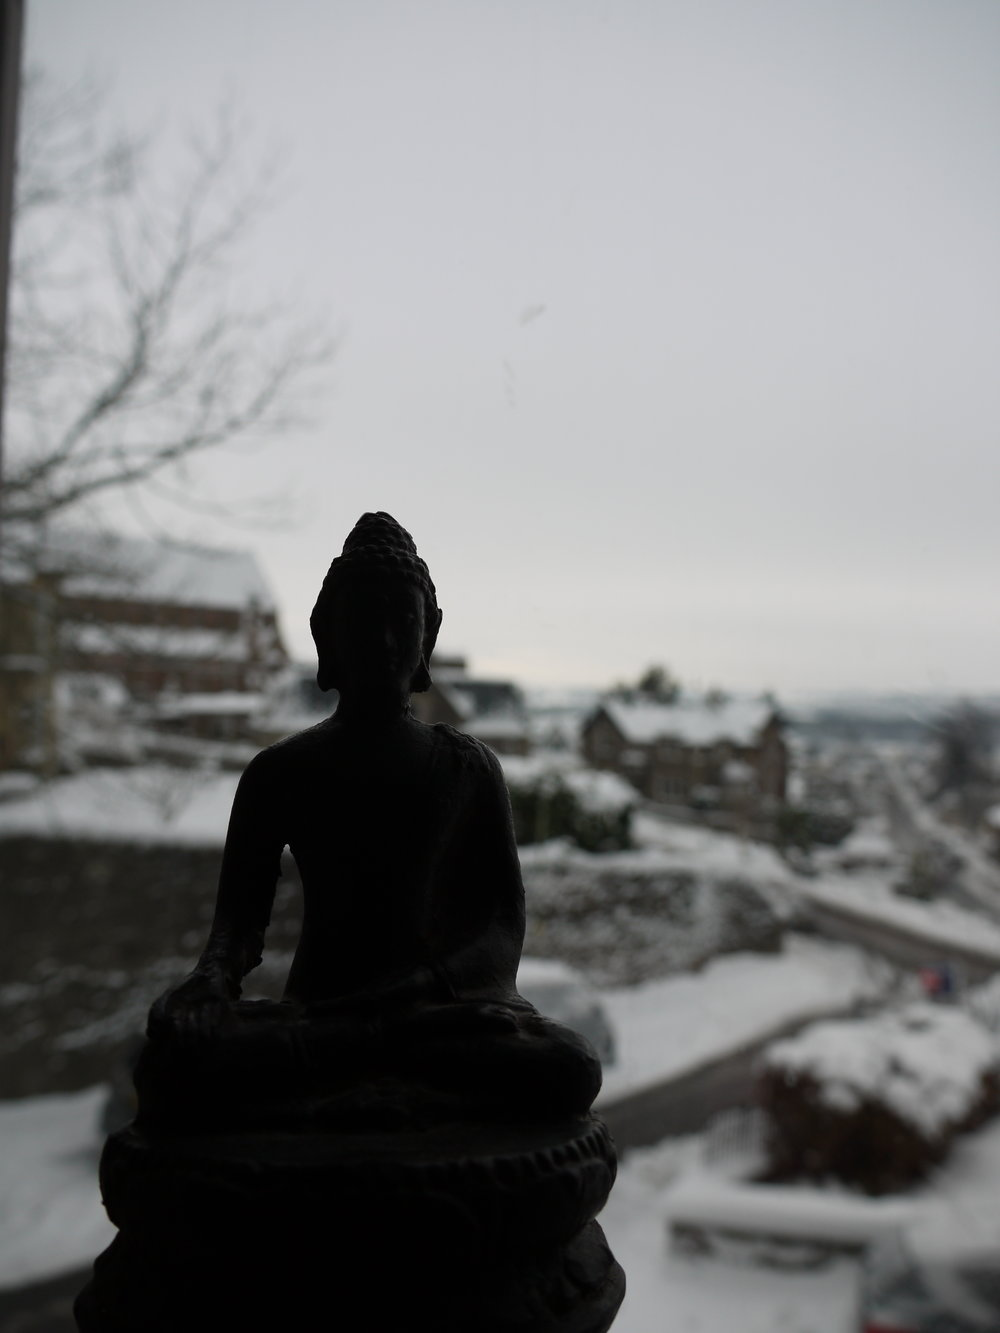 The Buddha and snowy Crieff, Scotland